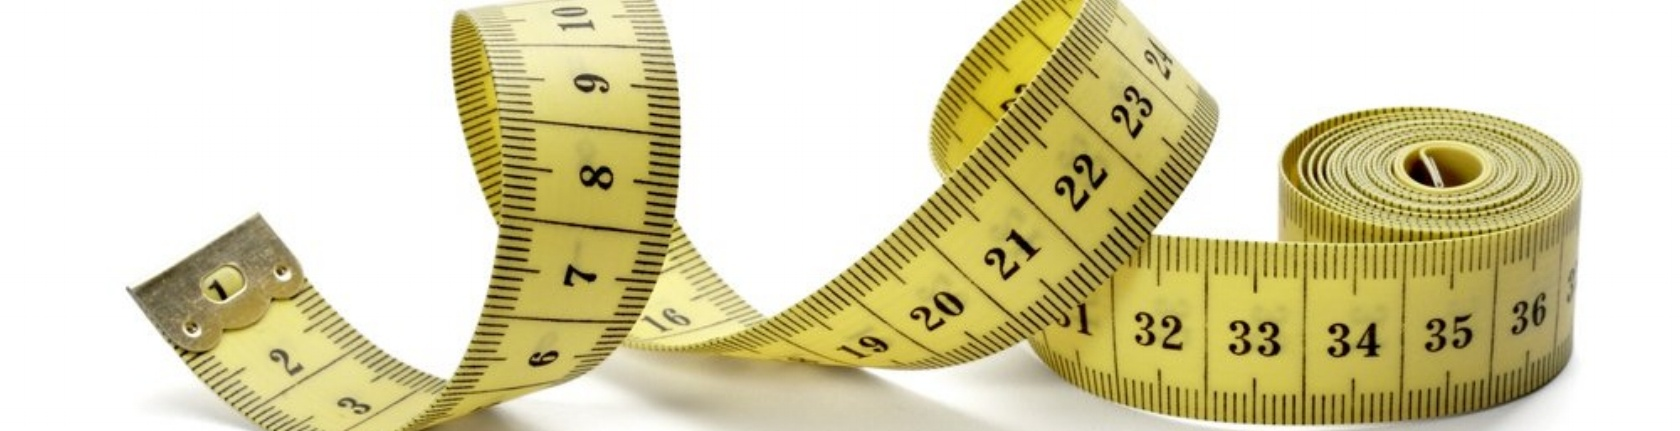 close up of measure tape on white background with clipping path-424201-edited.jpeg